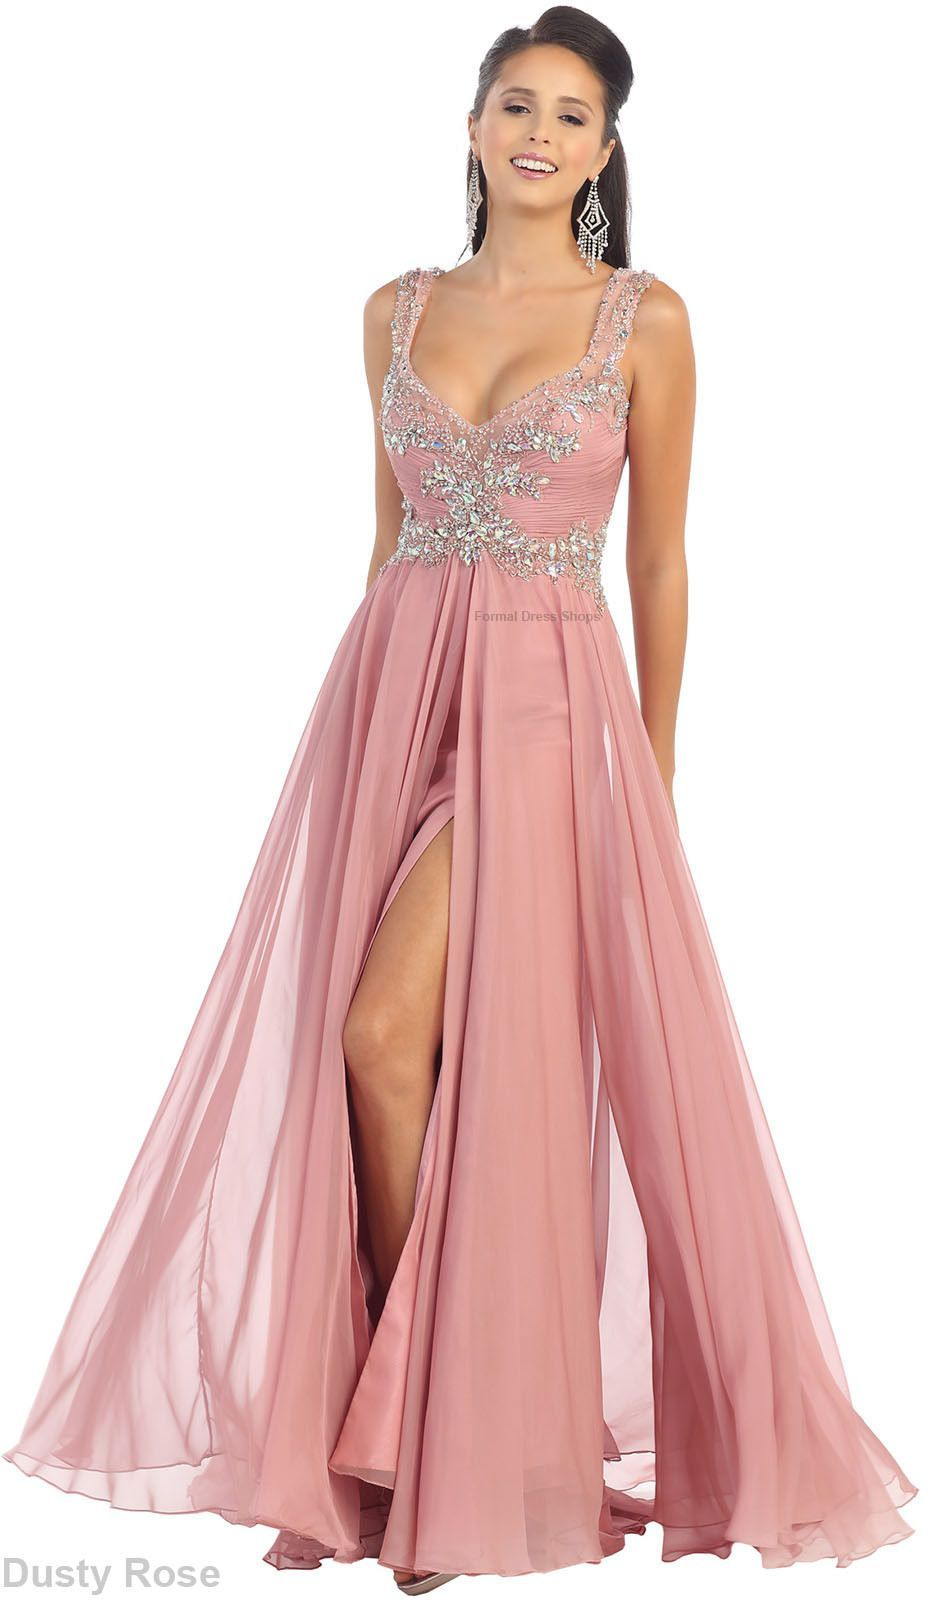 New flowy long dress formal dance party classy evening gowns pageant ...